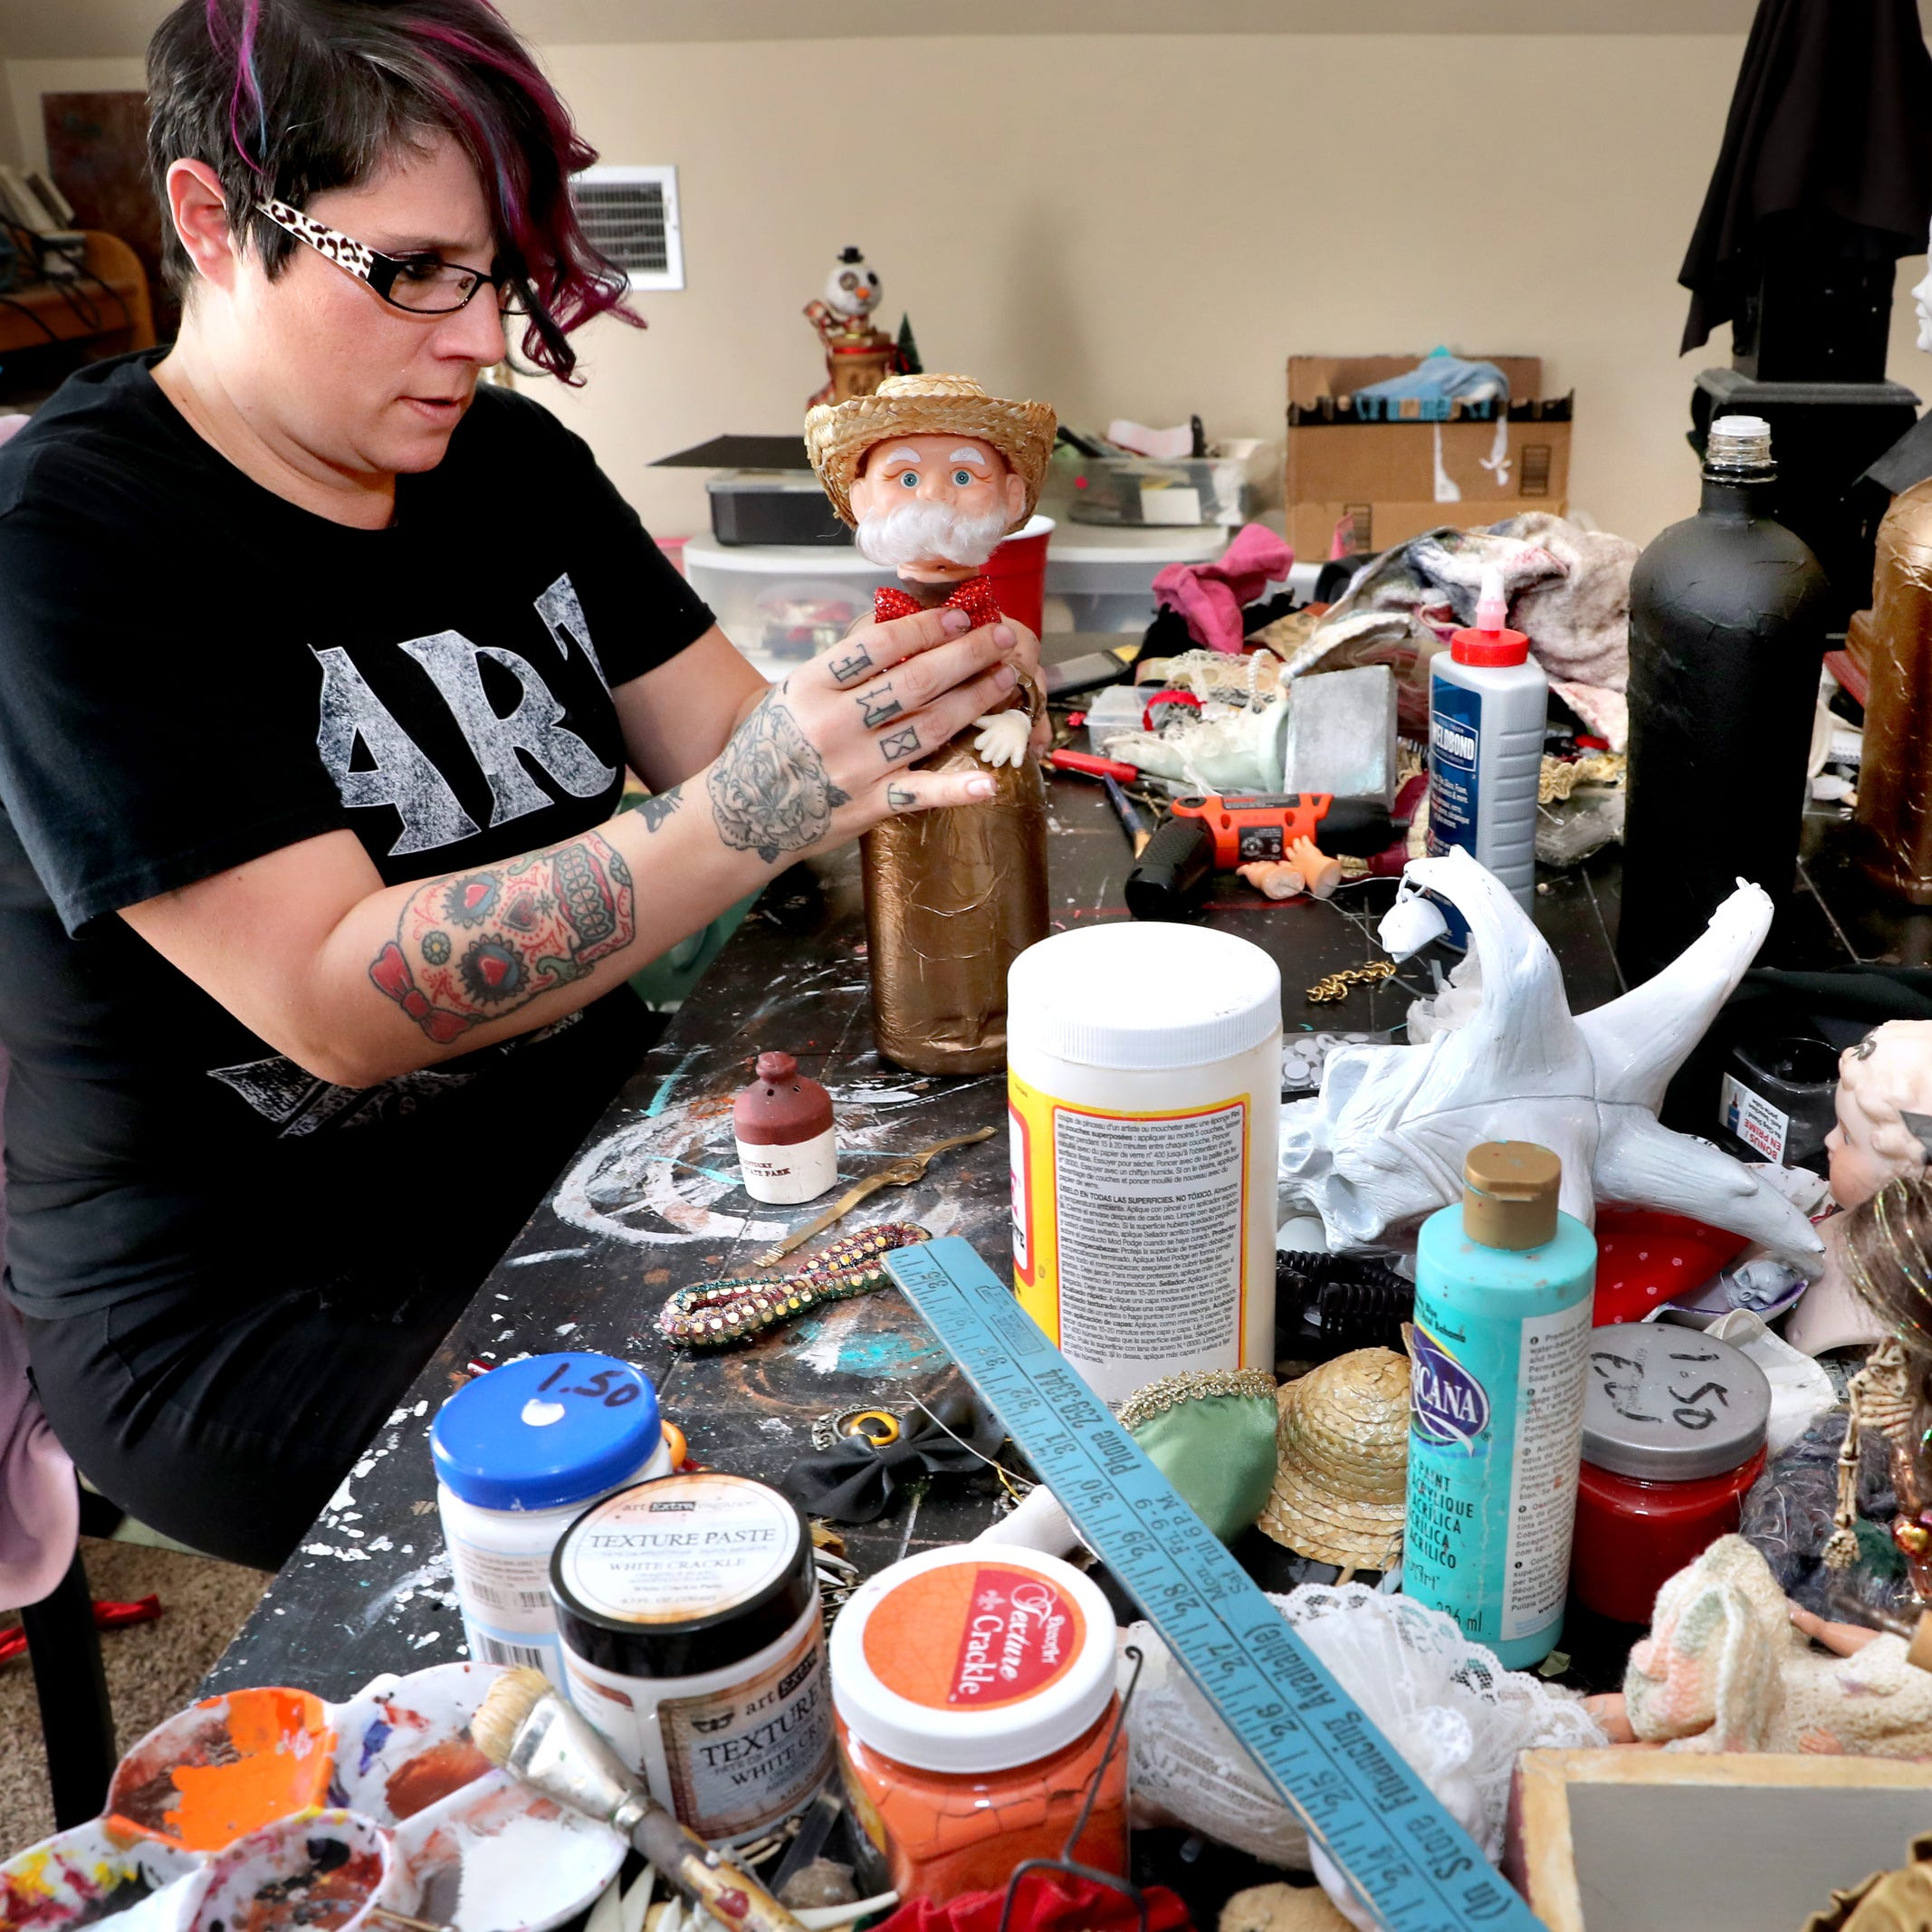 Murfreesboro artist transforms trash into macabre art